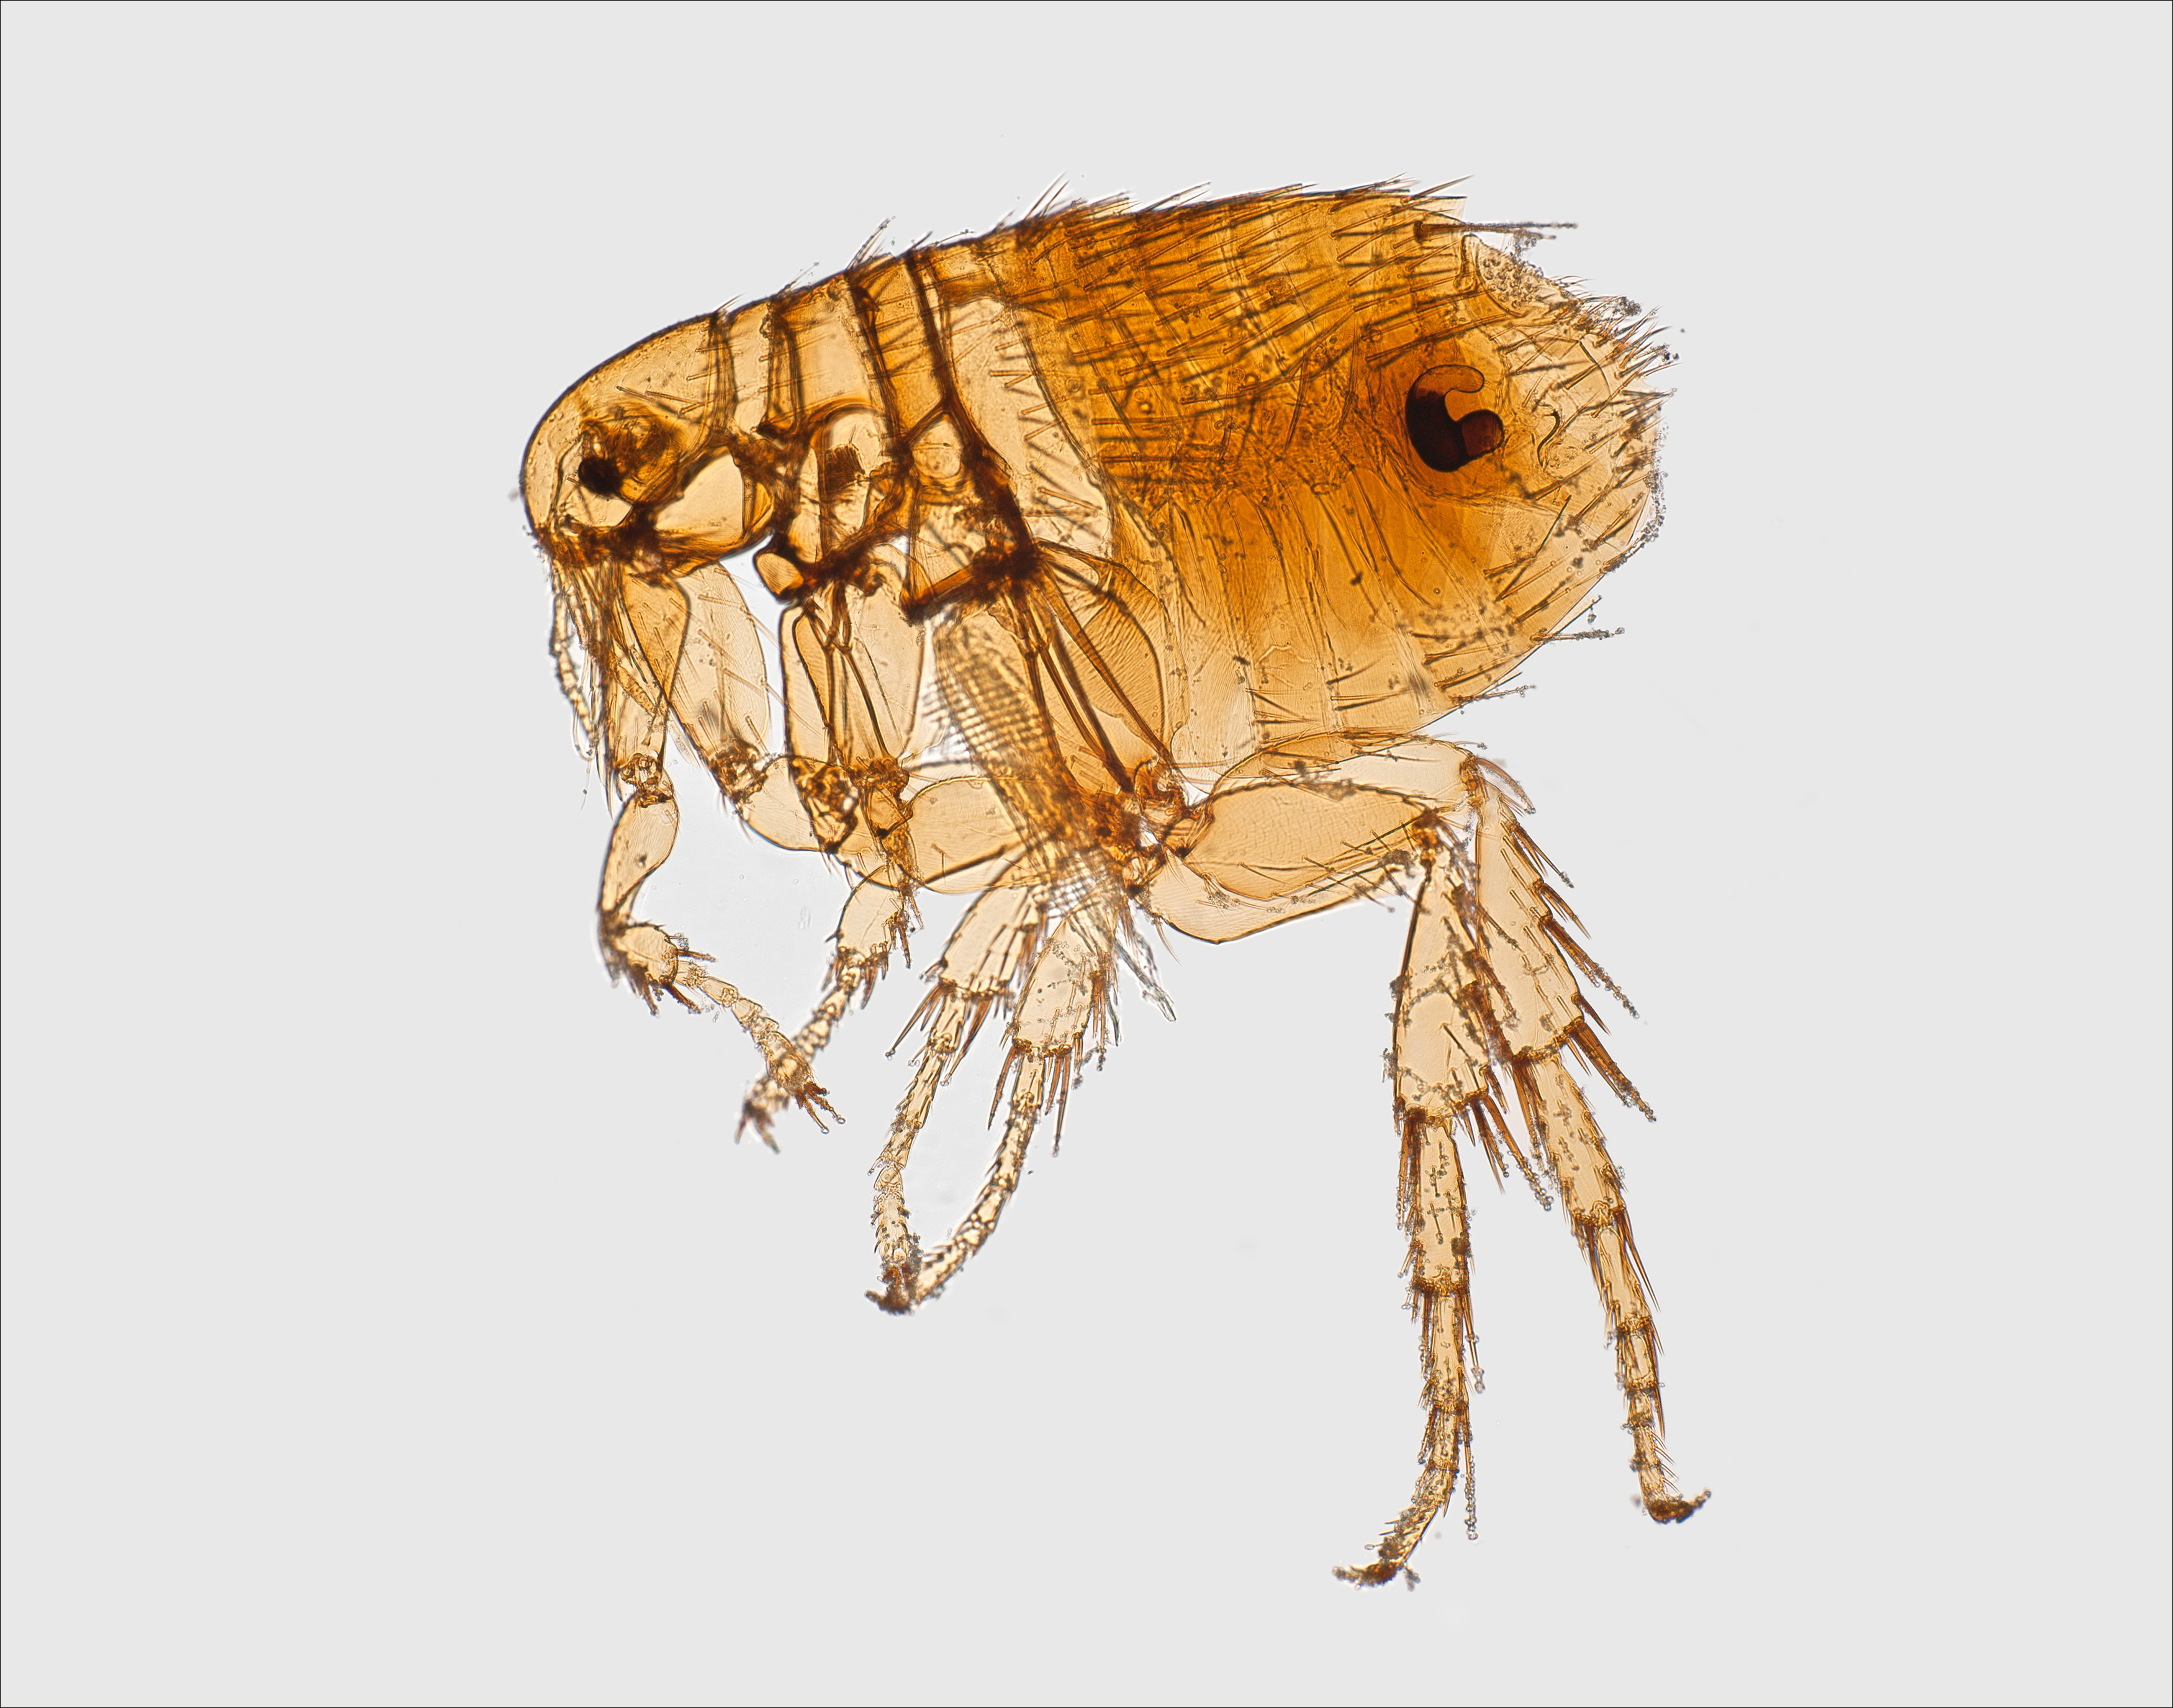 Image of a rat flea